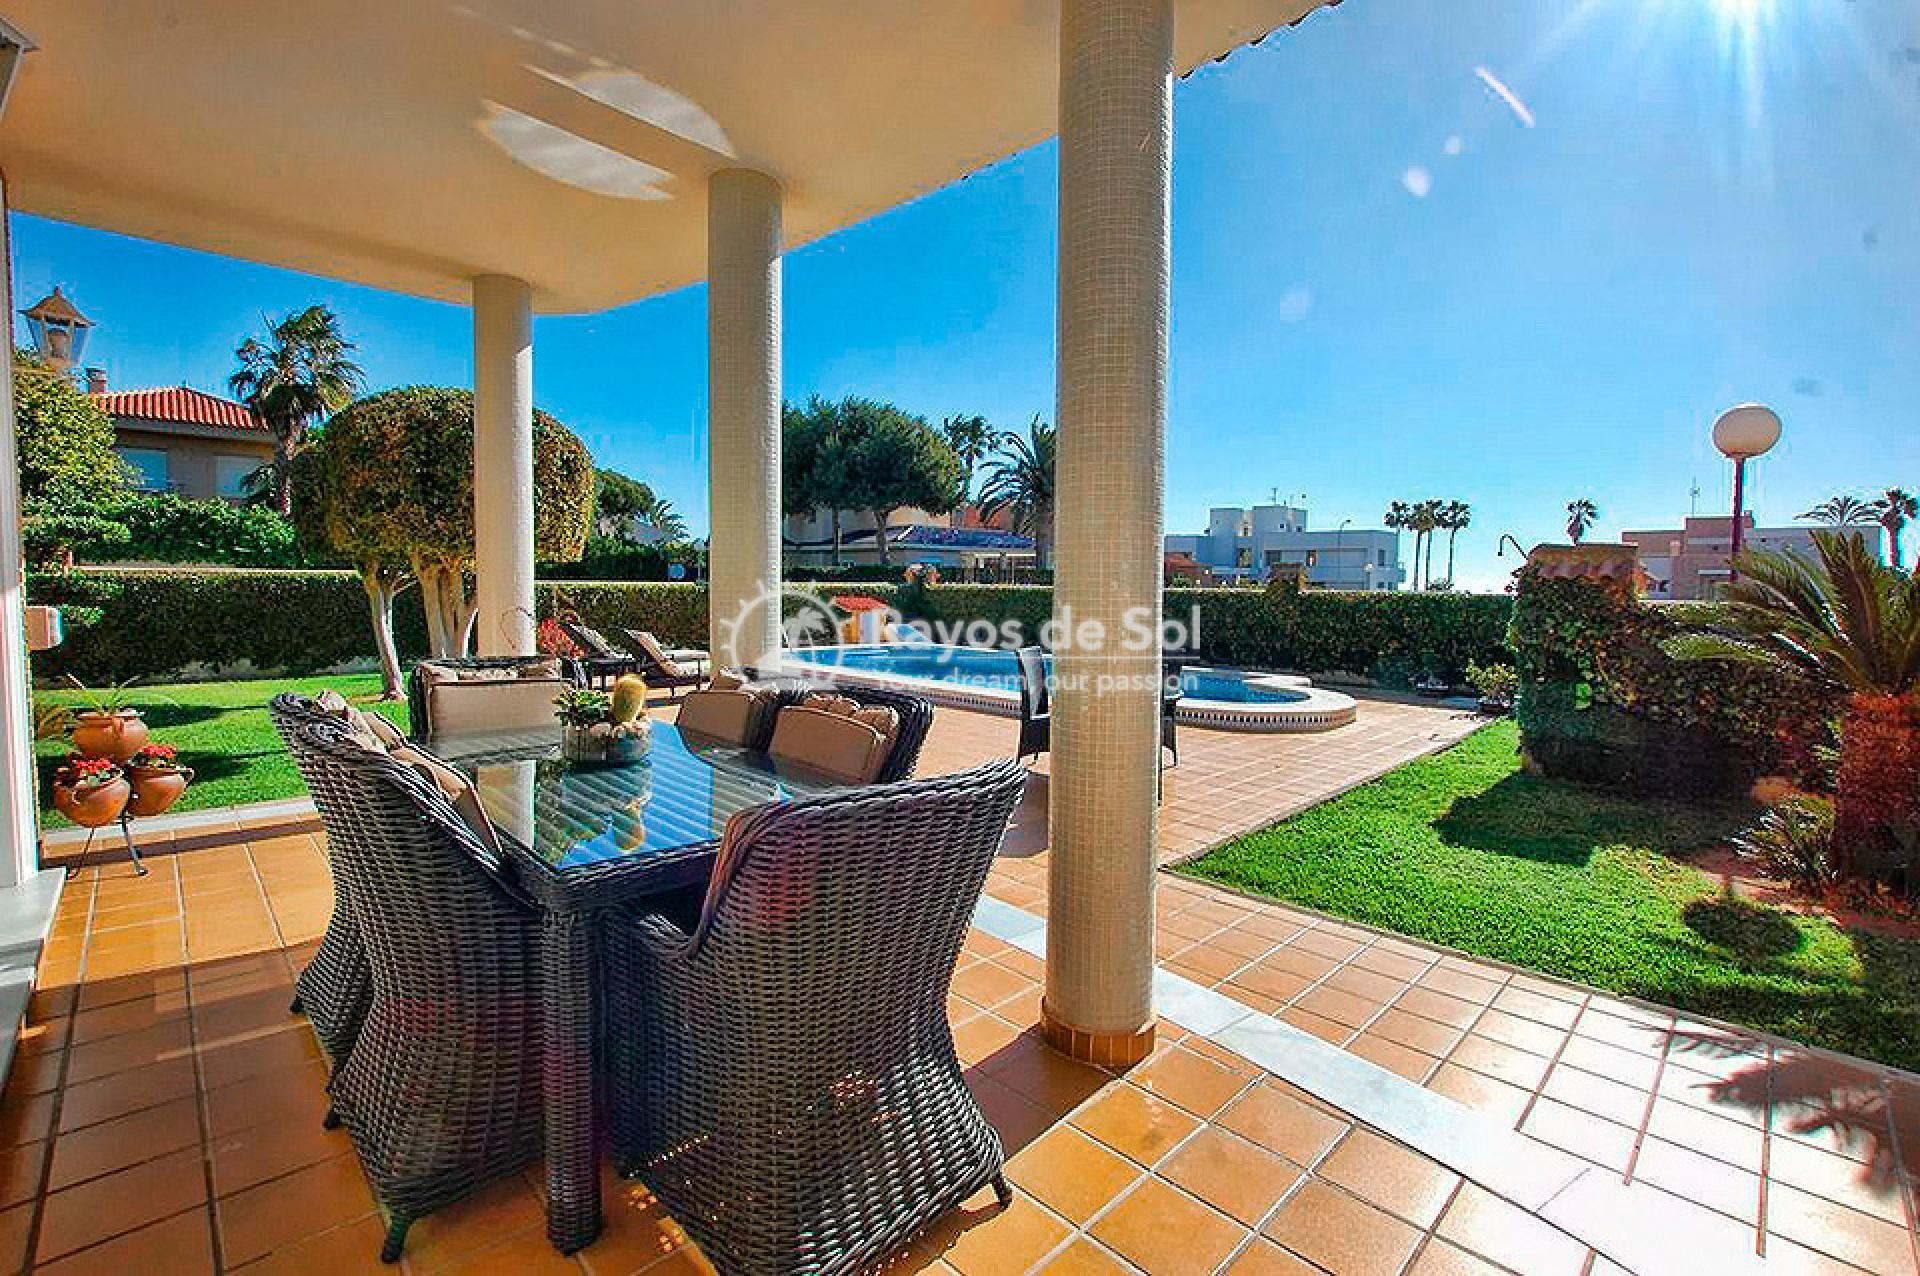 Villa  in Torrevieja, Costa Blanca (mp746) - 21